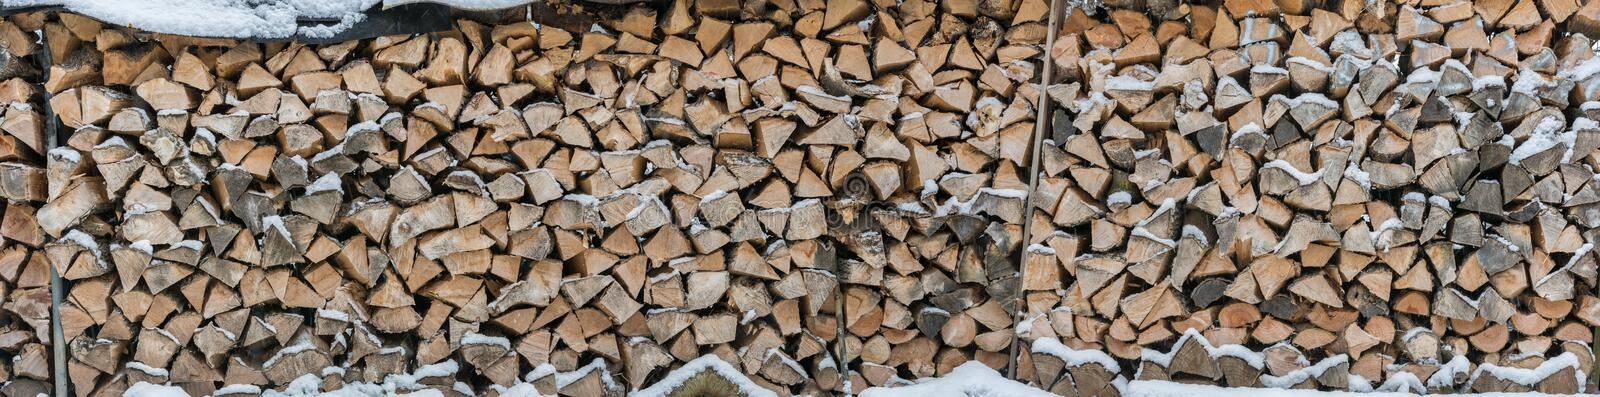 Panorama of snowy firewood as a background or texture royalty free stock photography